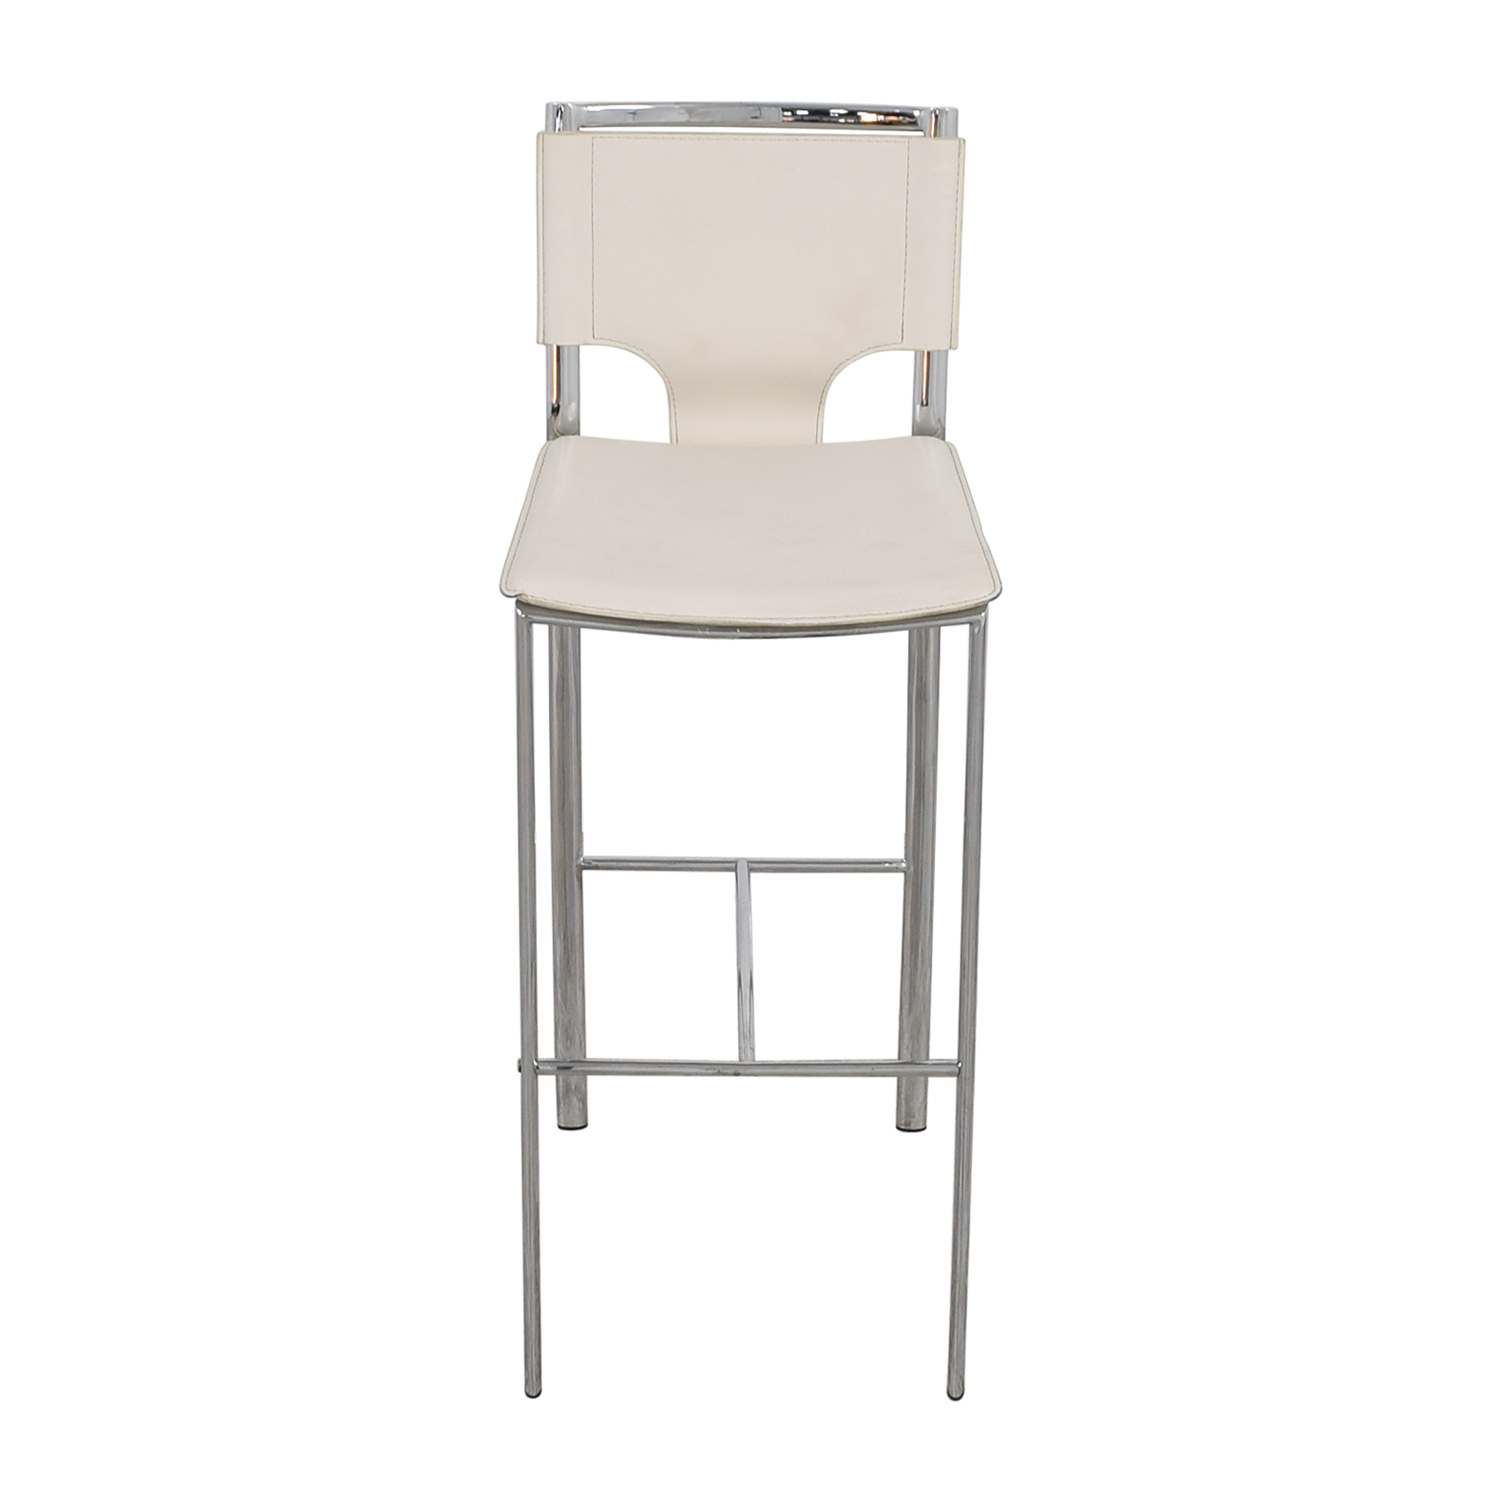 41% OFF White Leatherette and Chrome Bar Chair Chairs